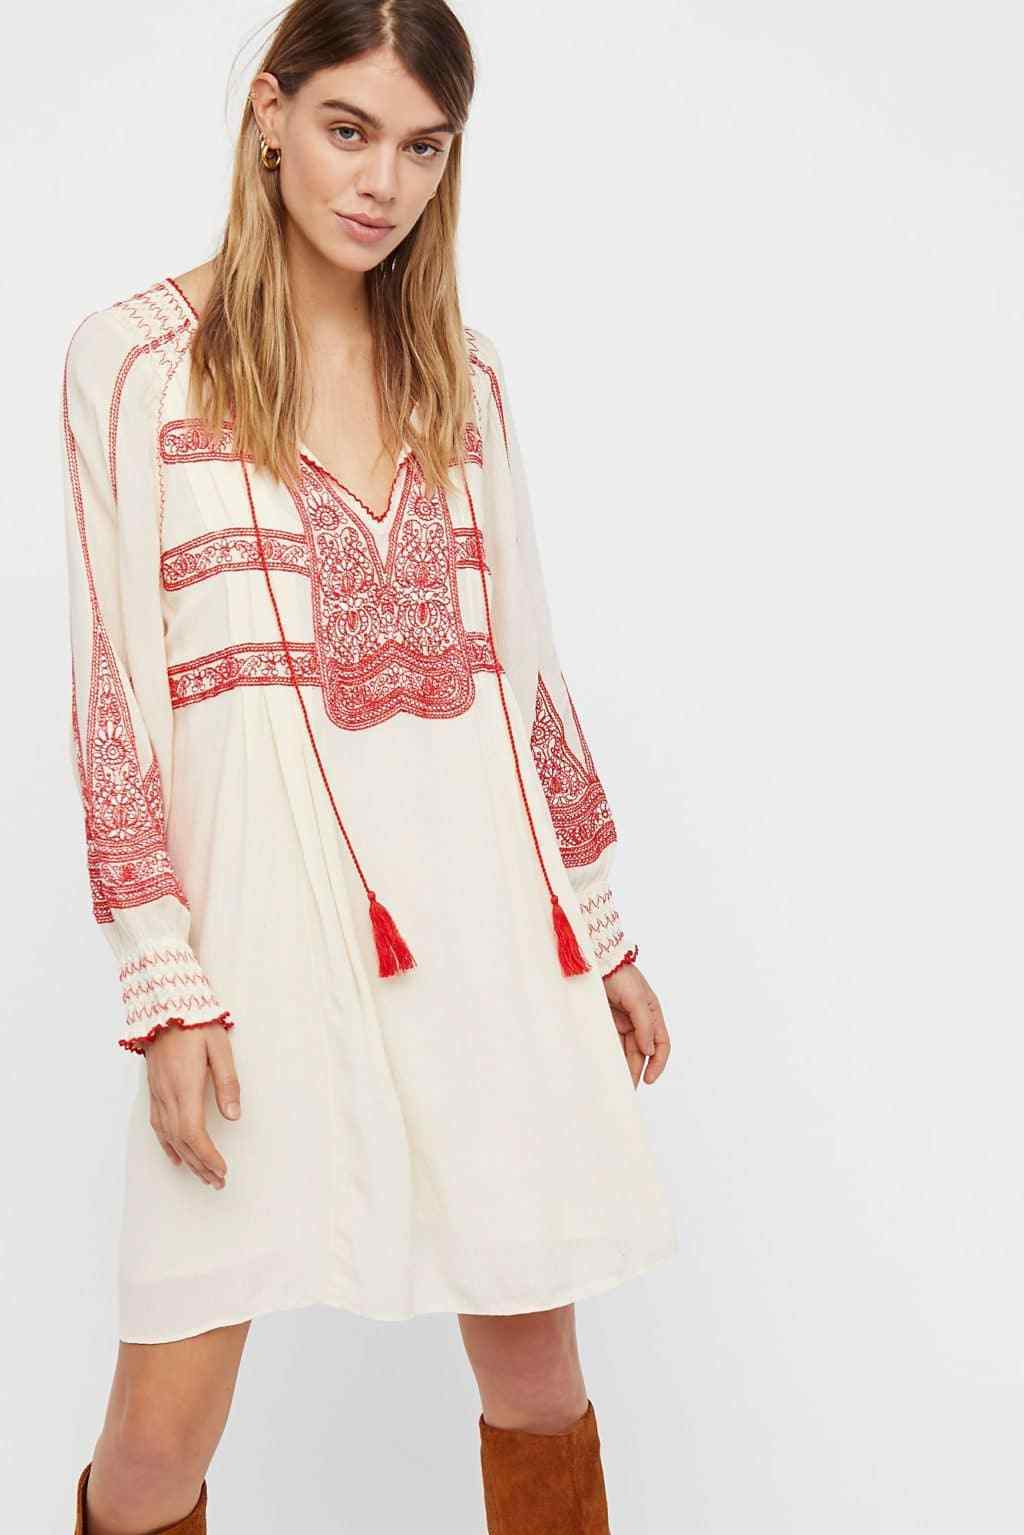 148 NWT FREE PEOPLE SzS WIND WILLOW EMBROIDERY LONG SLEEVE MINI DRESS CASHMERE